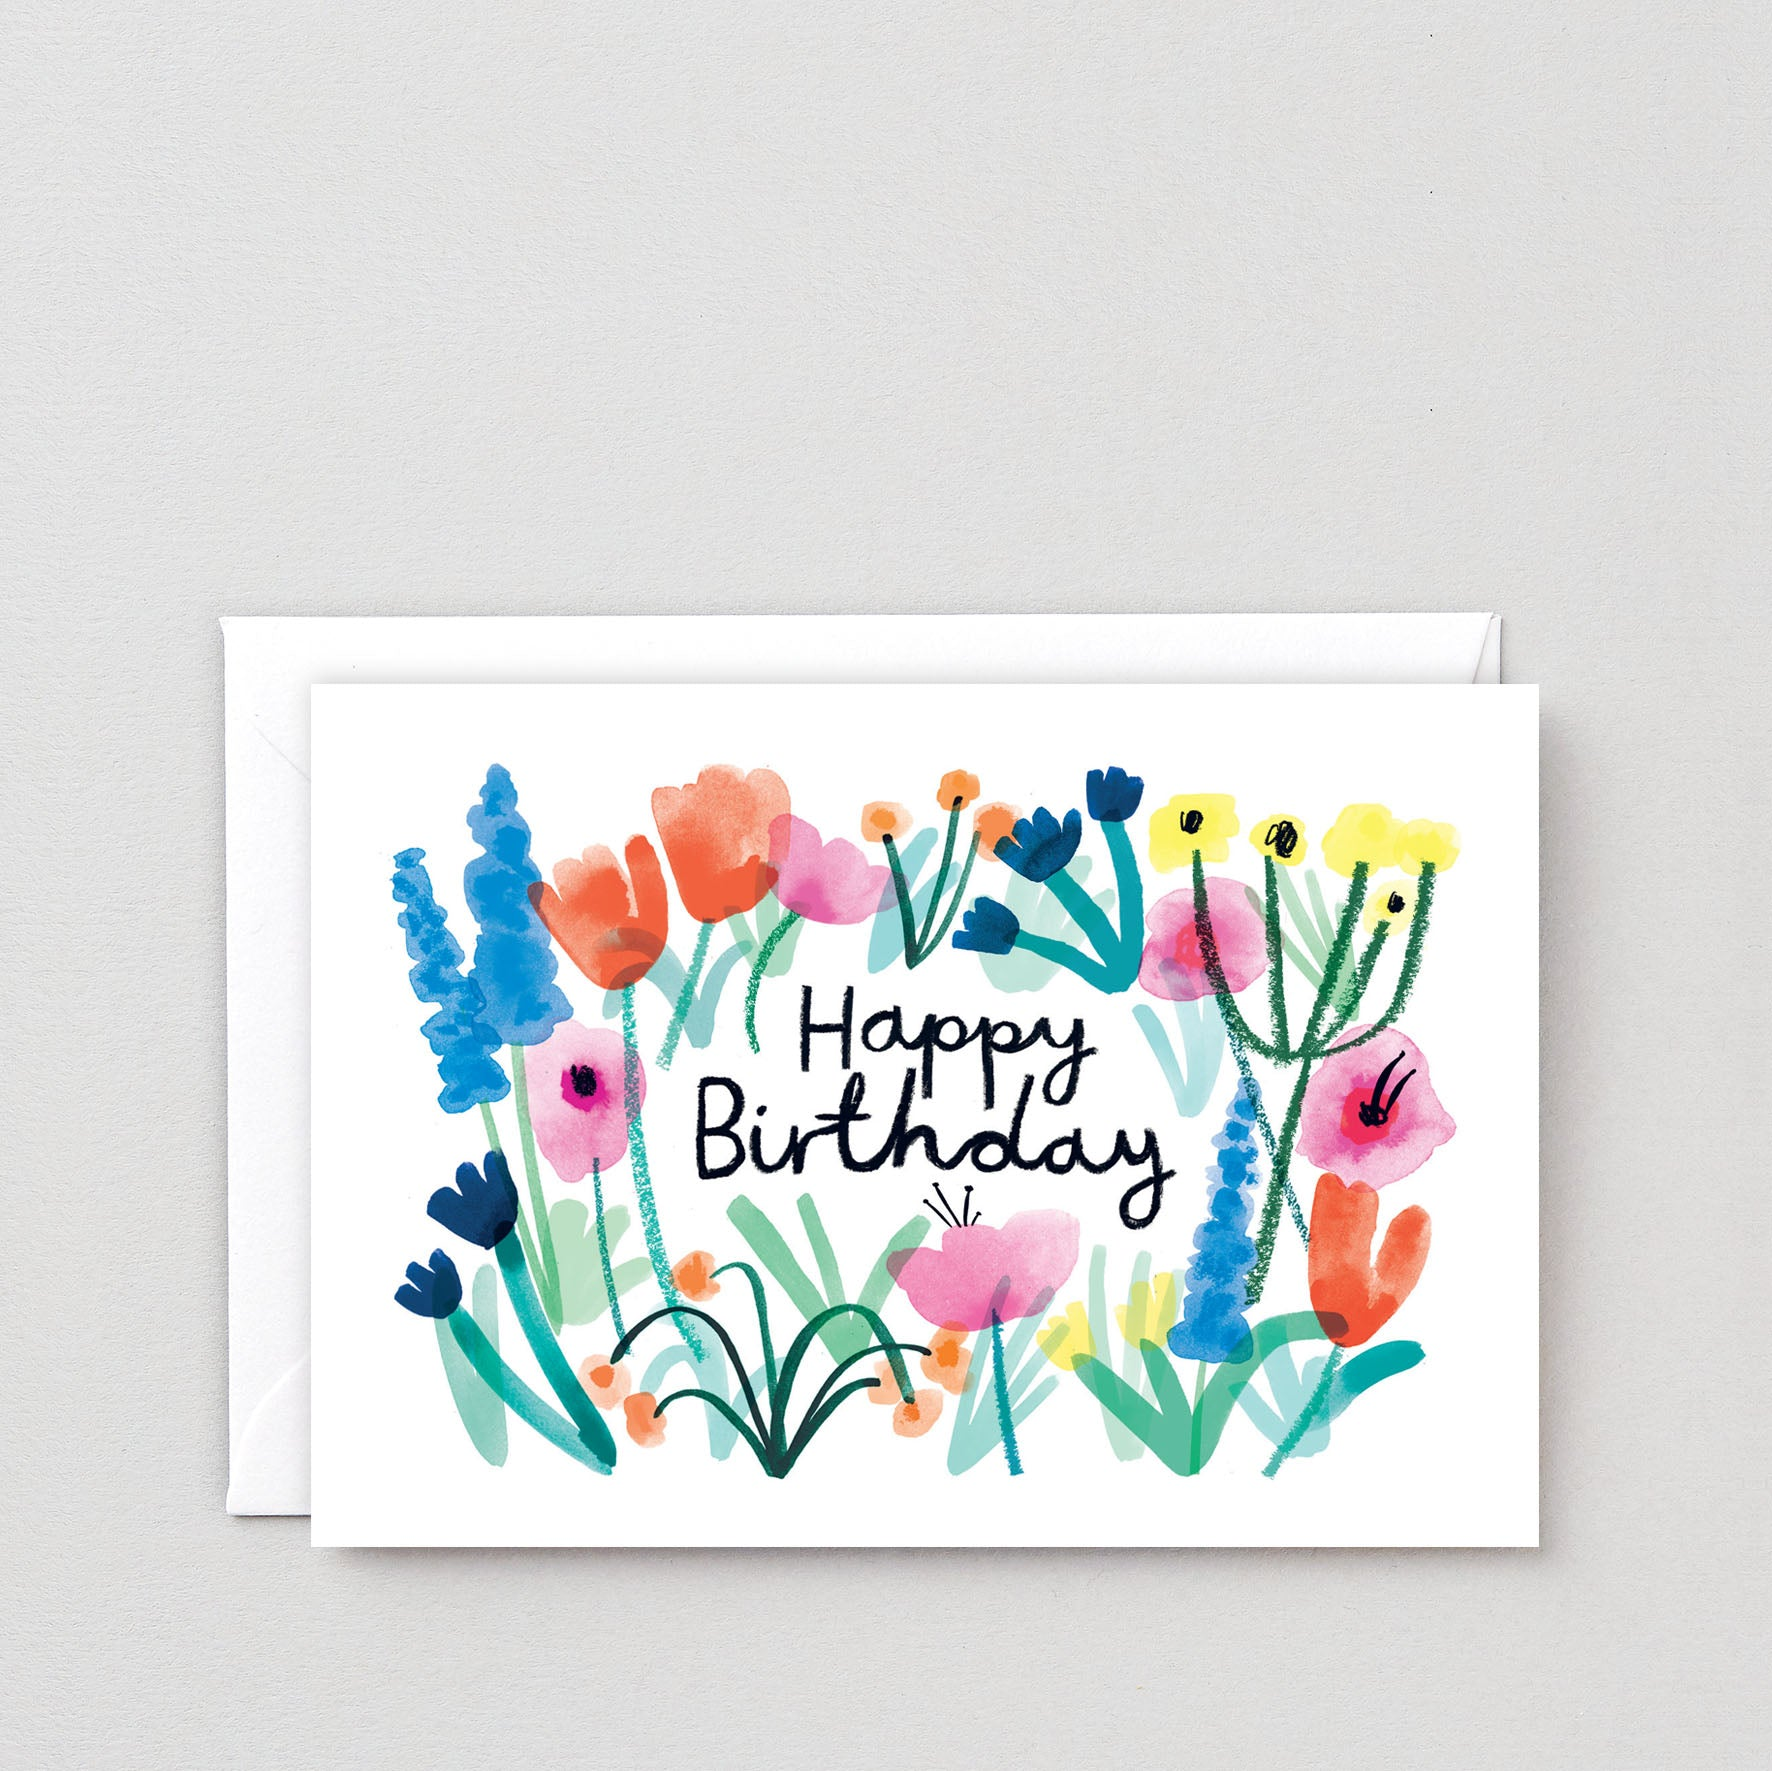 Birthday Card - Floral Birthday Greetings, Wrap, Handcrafted Home Goods and Gifts